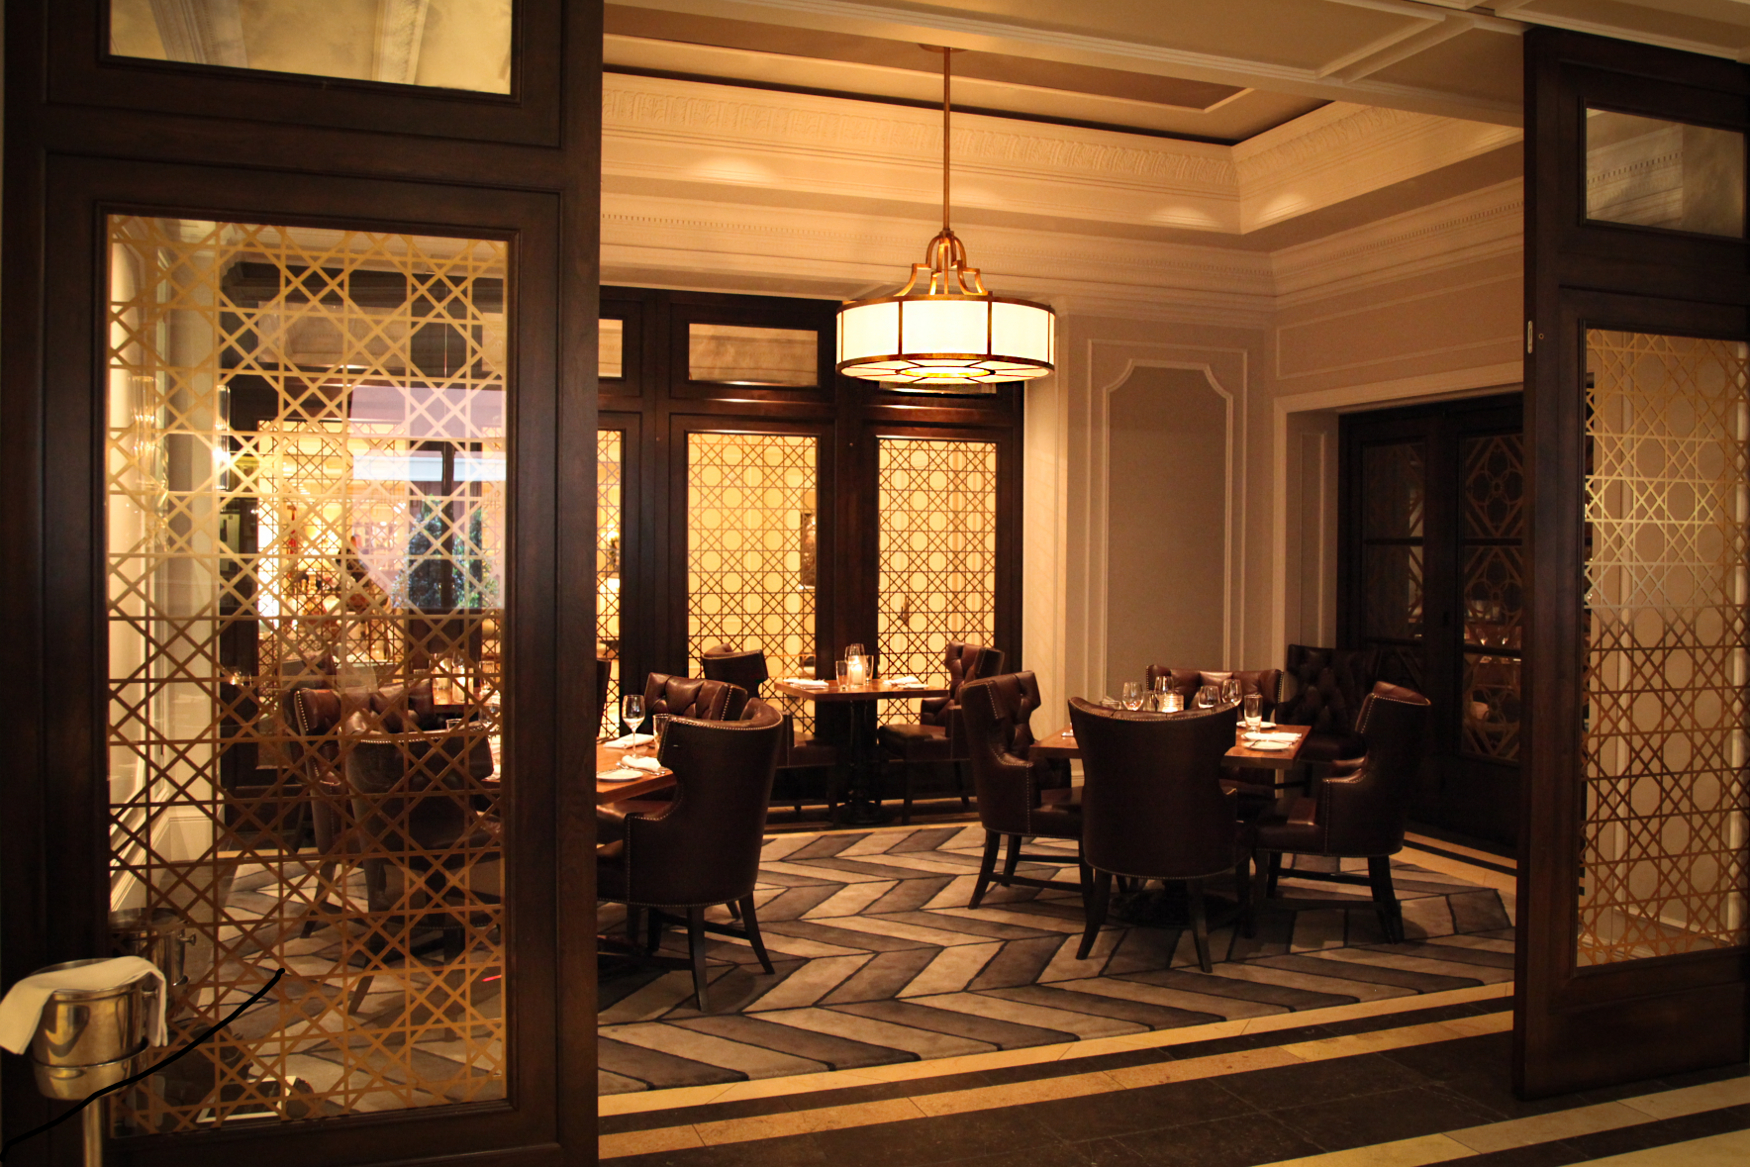 Delightful Private Dining. Hotel Monteleone Tennessee Williams Room